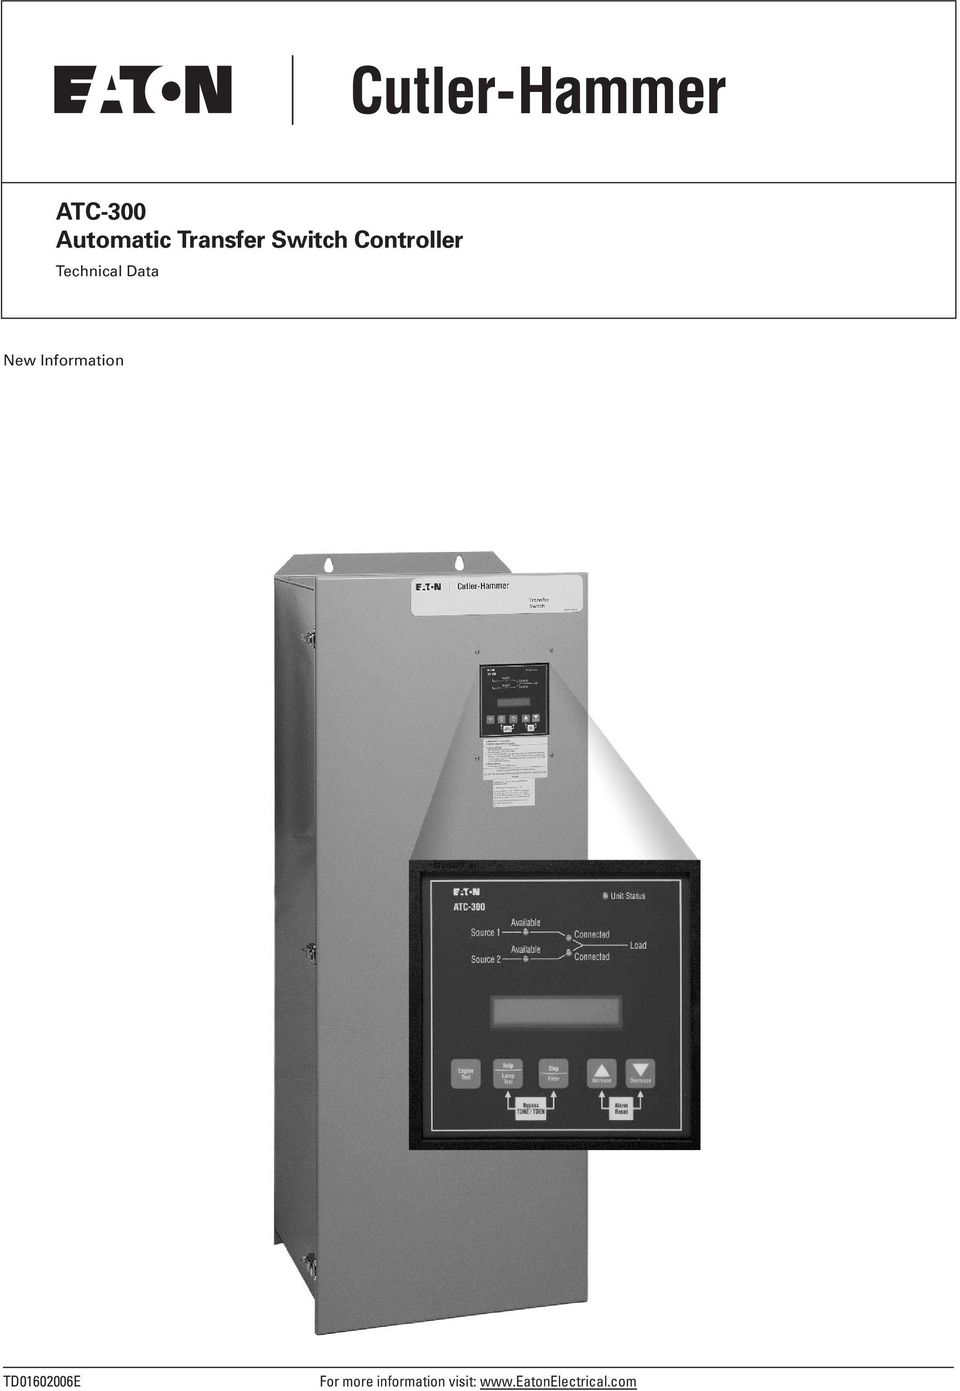 hight resolution of 2 technical data page 2 effective may 2004 atc 300 introduction the cutler hammer atc 300 from eaton s electrical business is a comprehensive